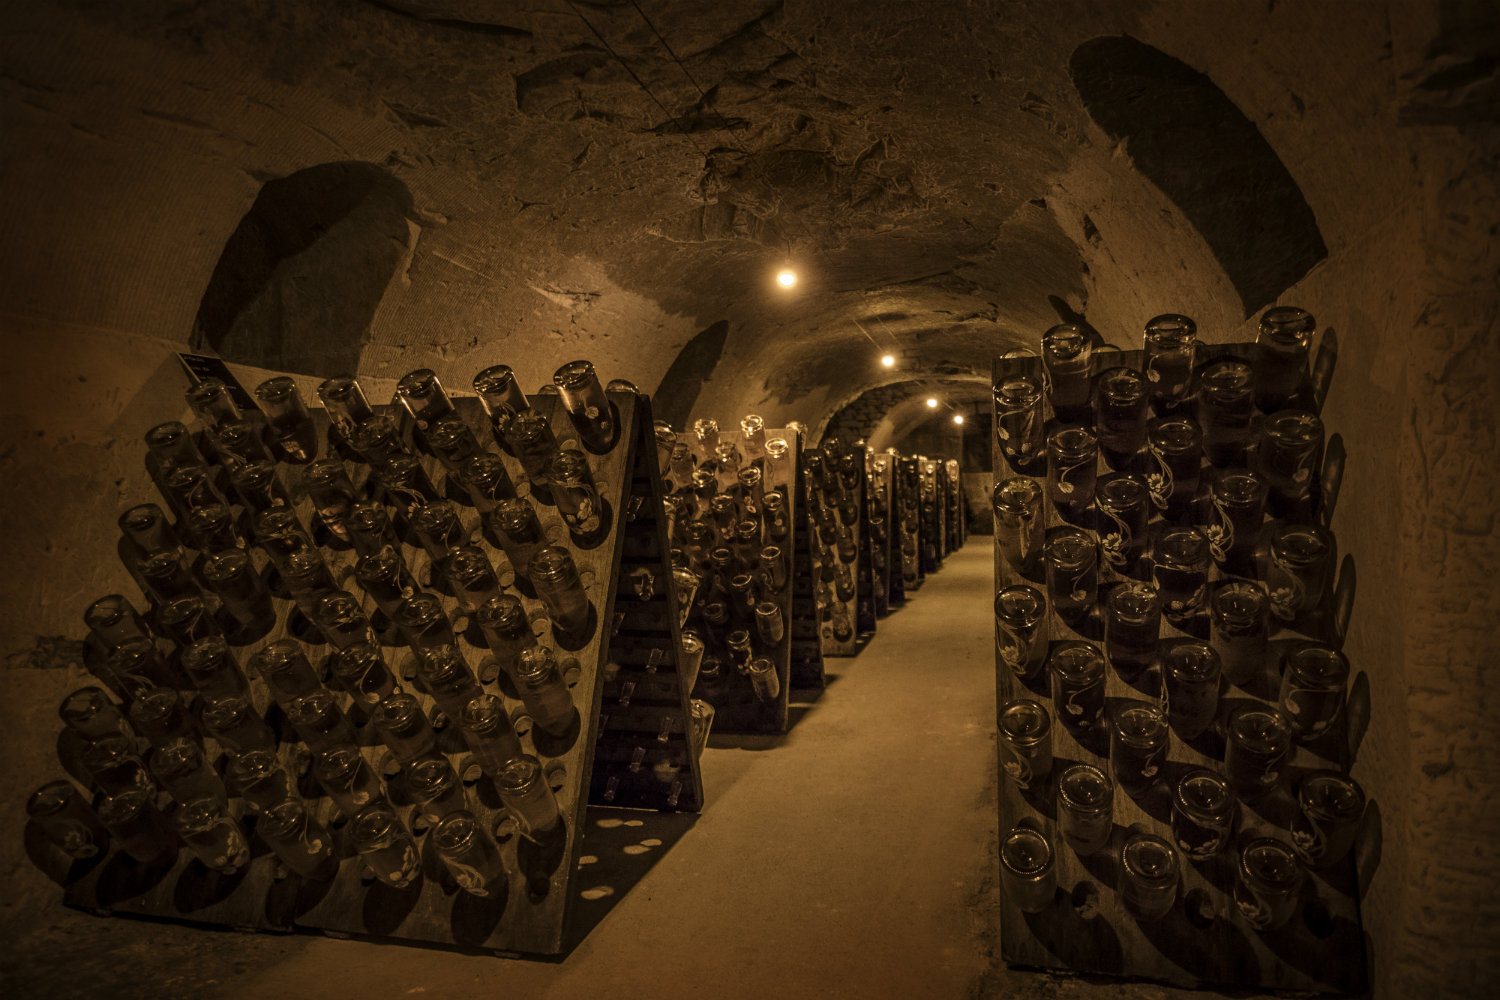 Perrier Jouet Blanc de Blancs Champagne in caves under Belle Époque